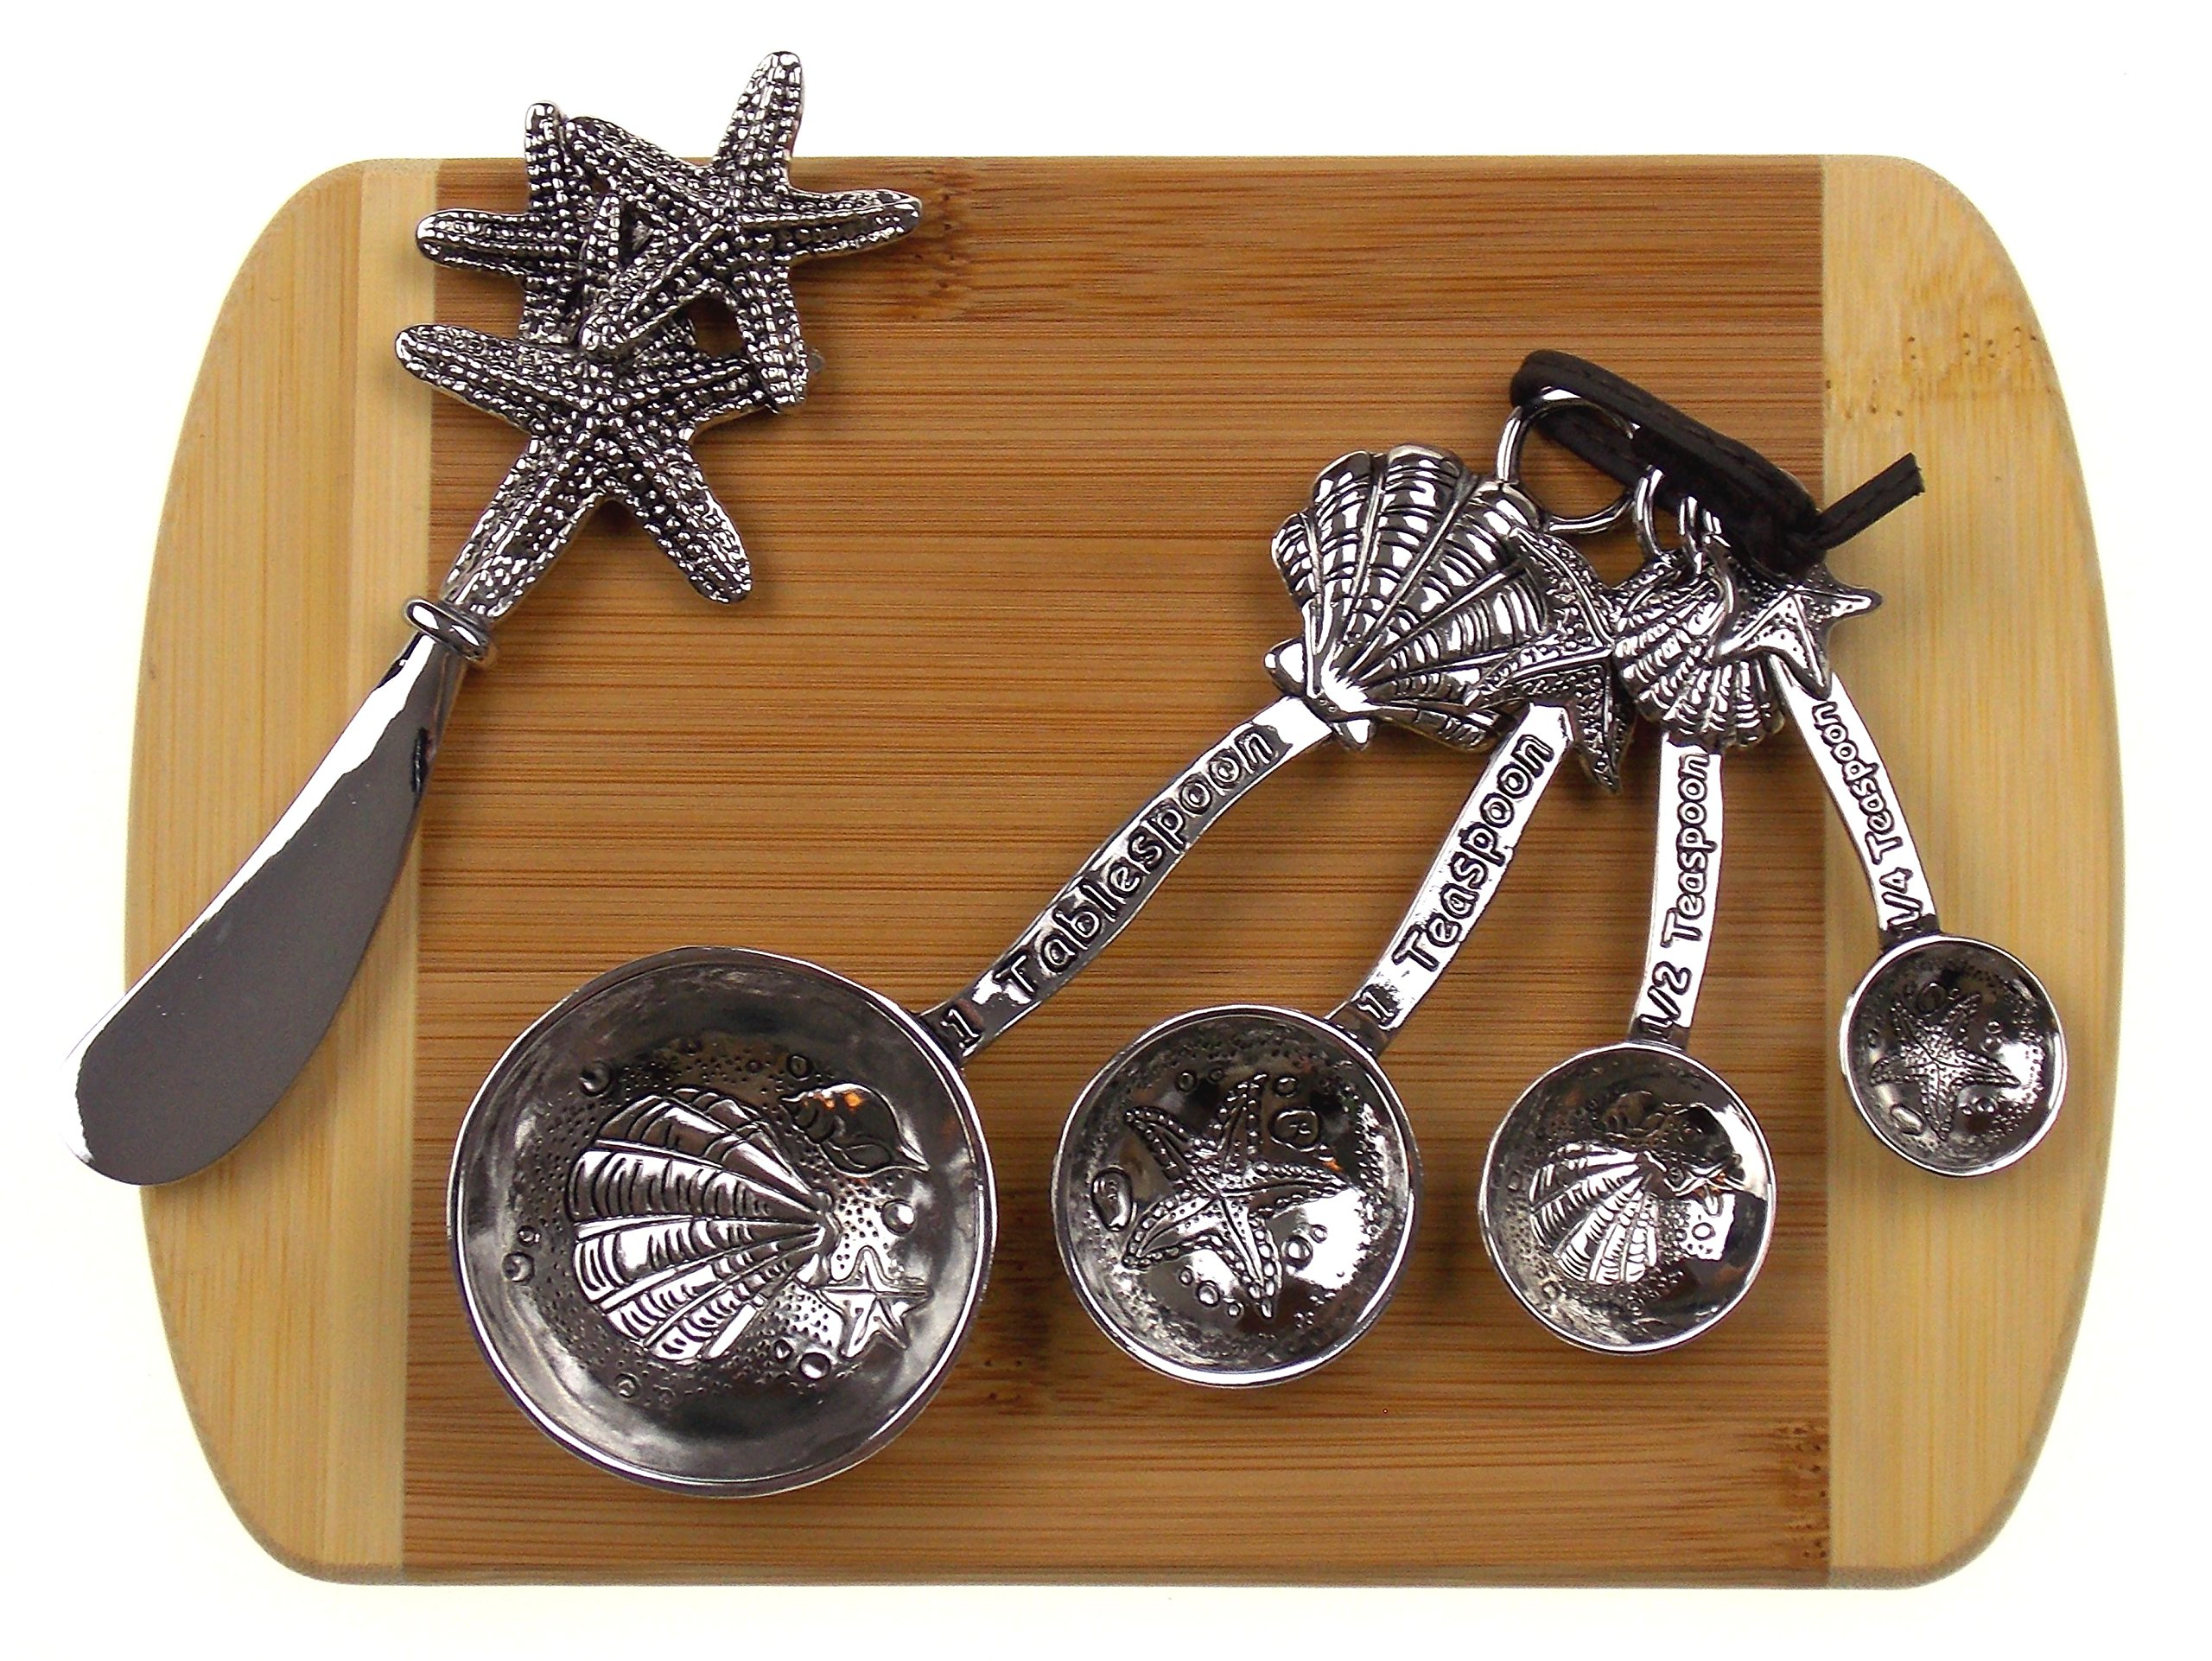 Starfish Cheese Spreader, Shells & Starfish Measuring Spoons Bundled with Bamboo Cheese Board by Hickoryville